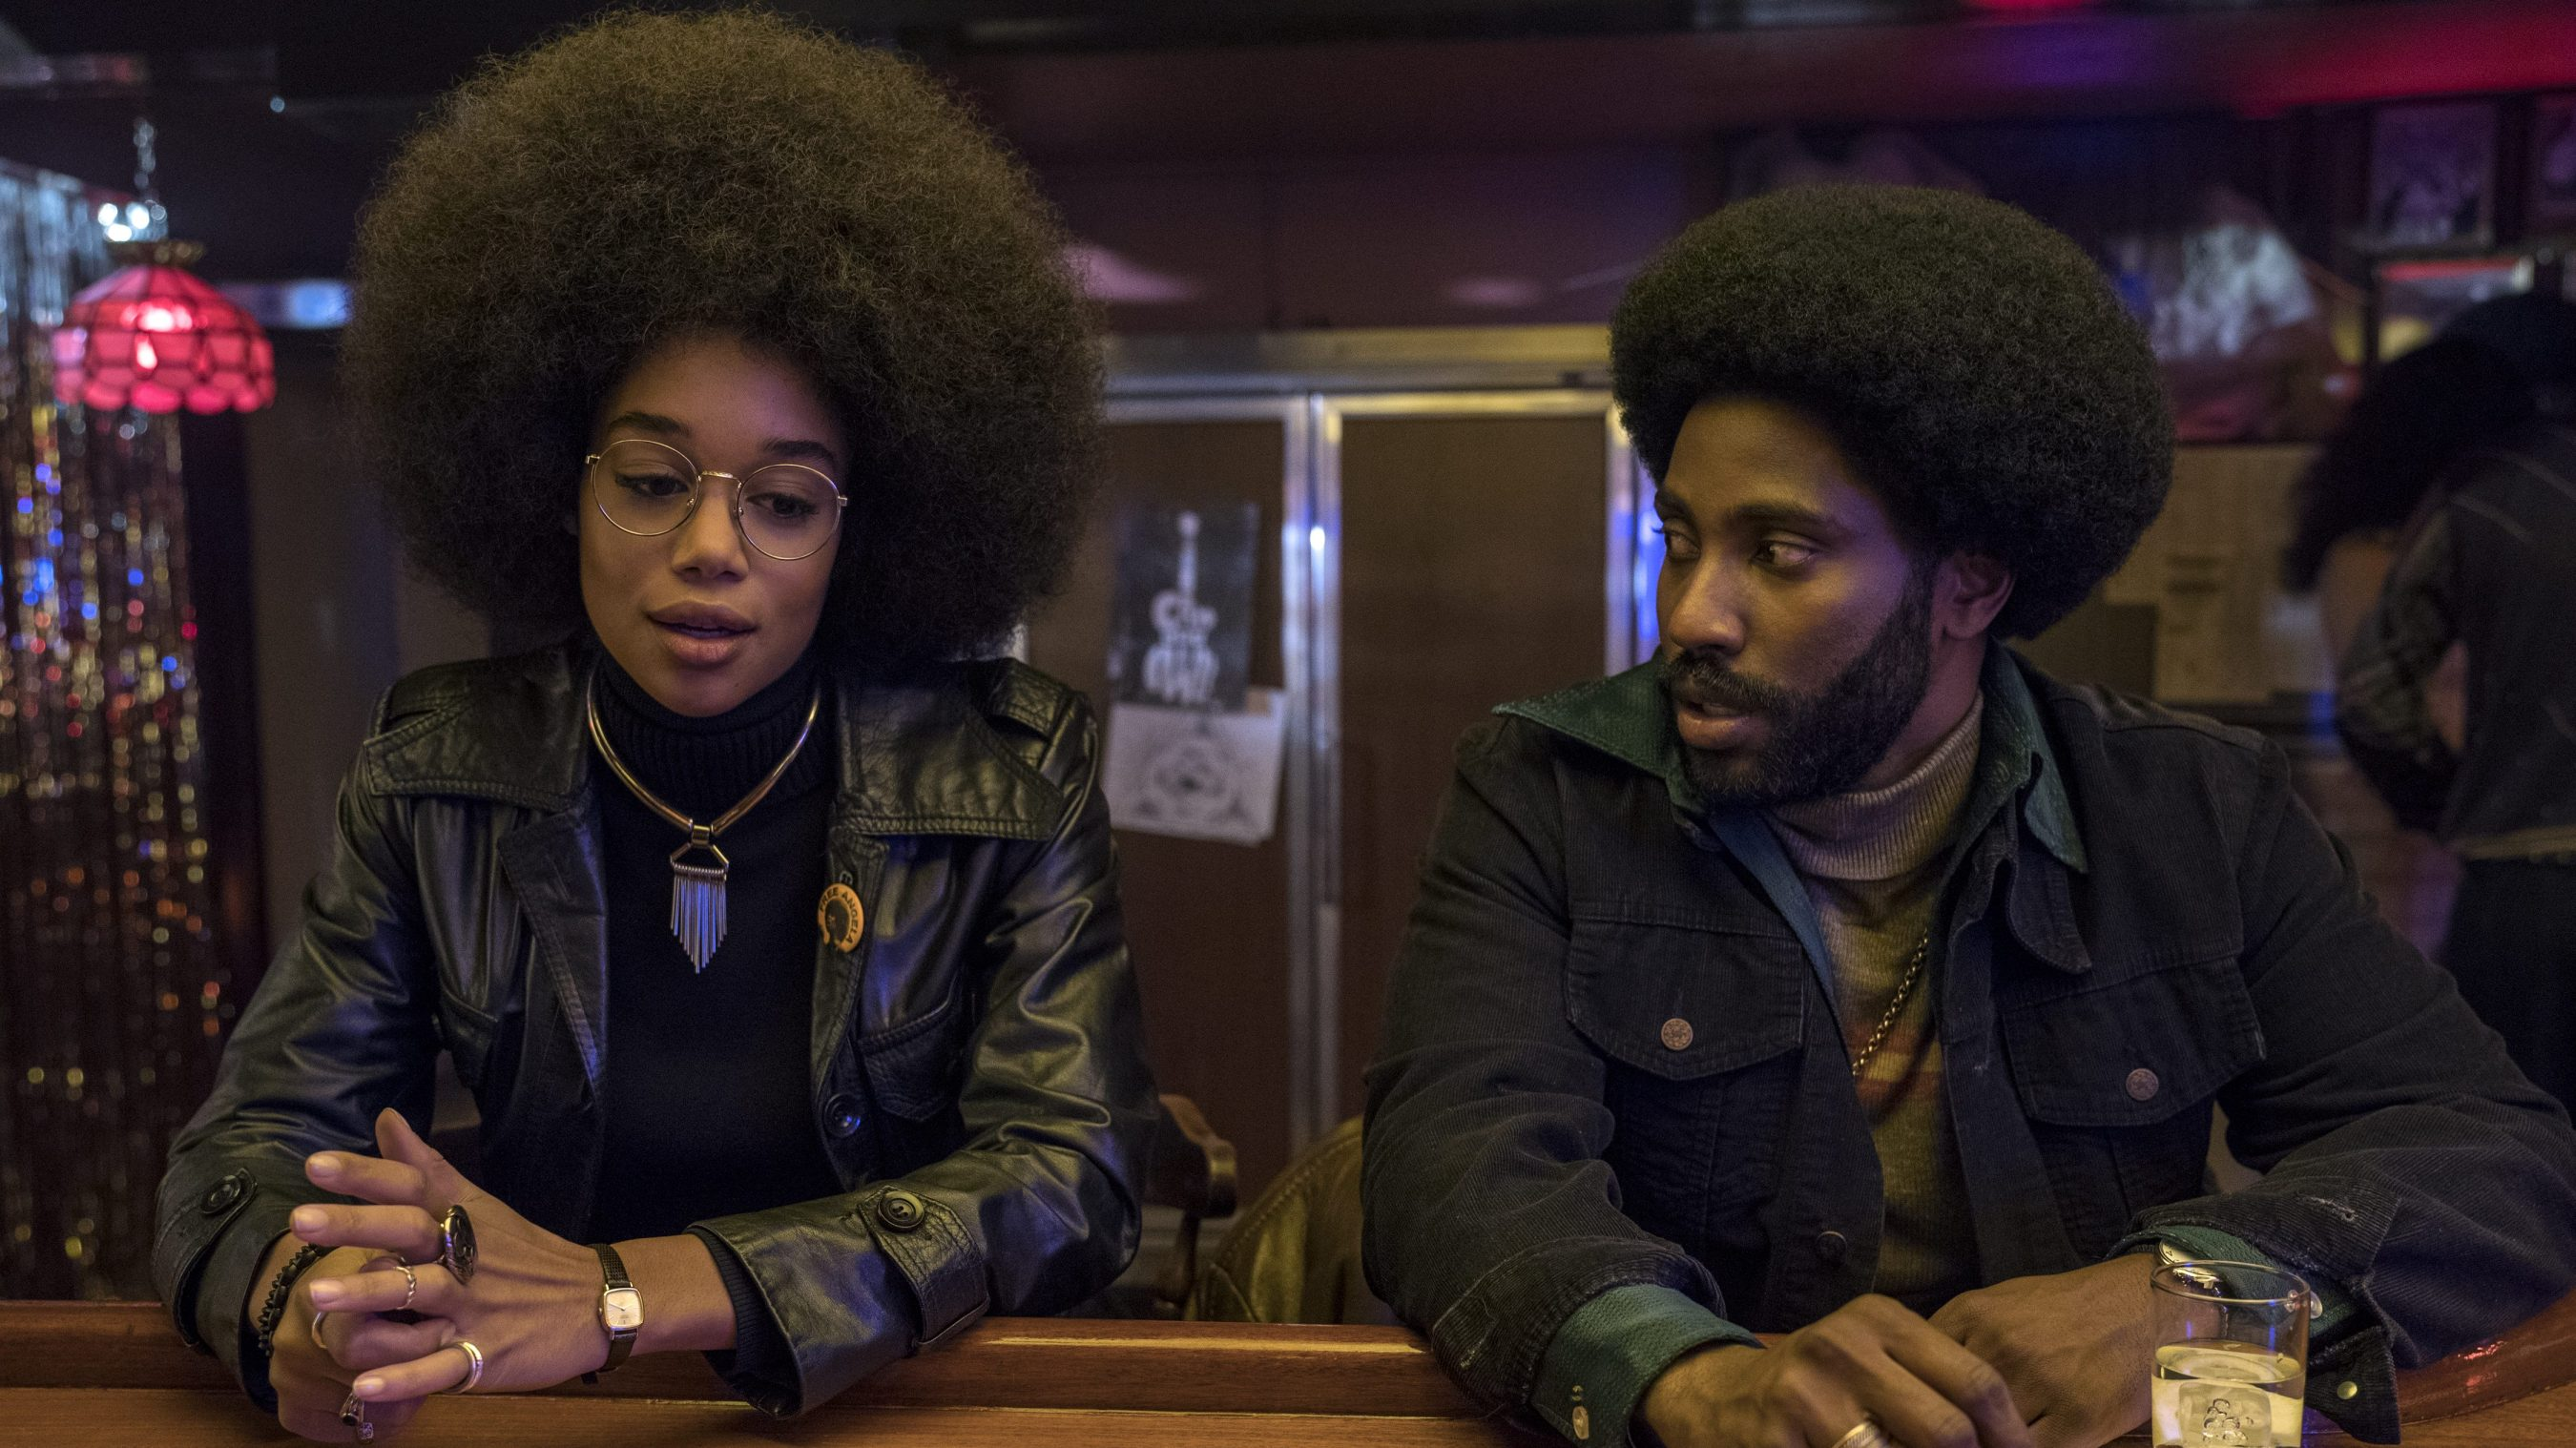 With BlacKkKlansman Spike Lee brings the fire this time